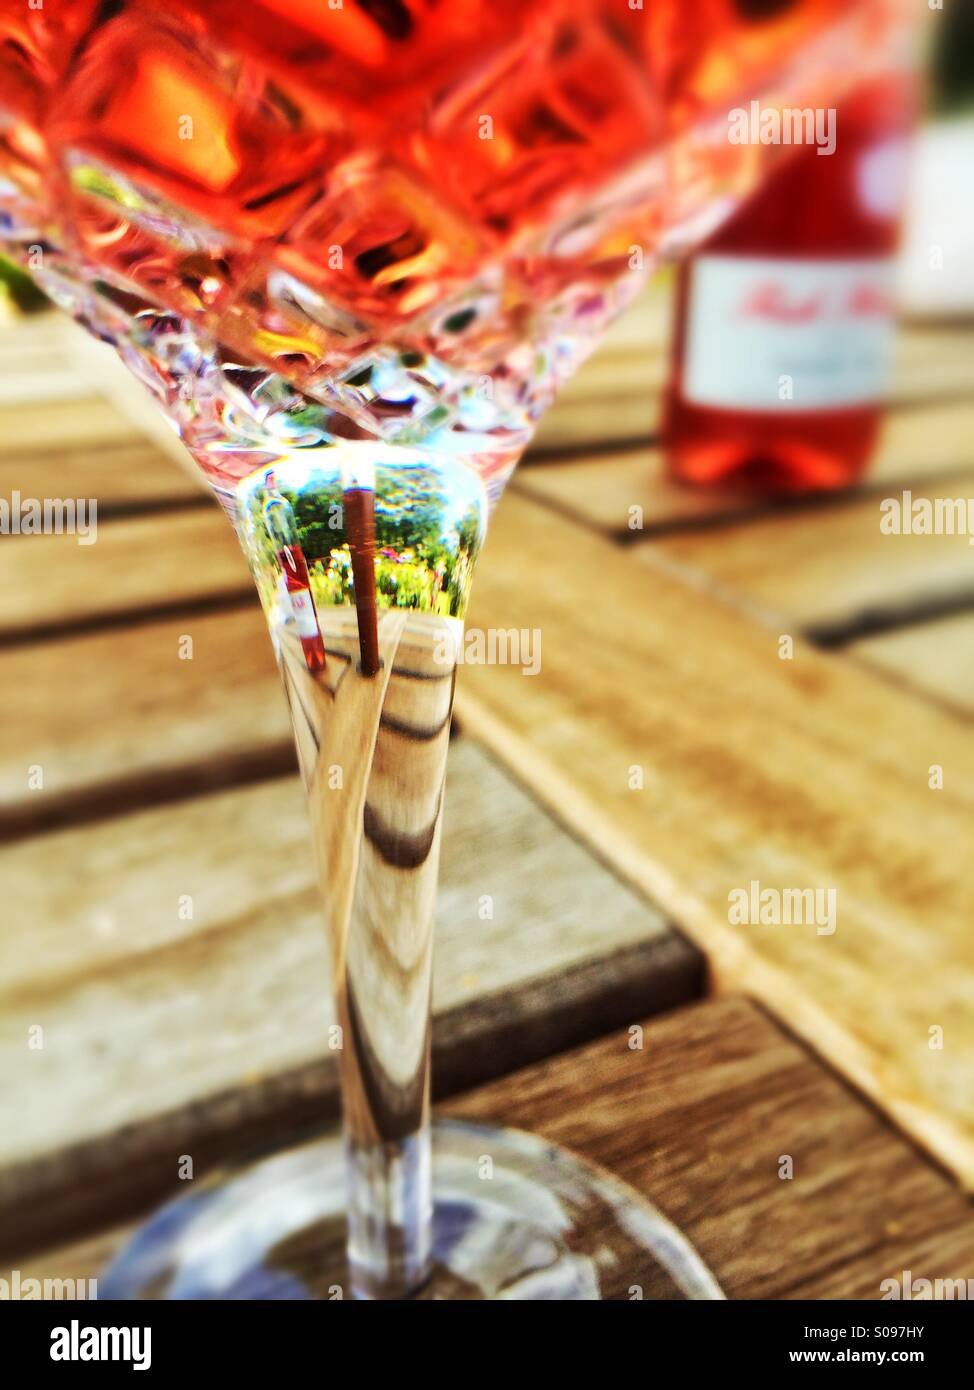 Celebrate the new year!! - Stock Image